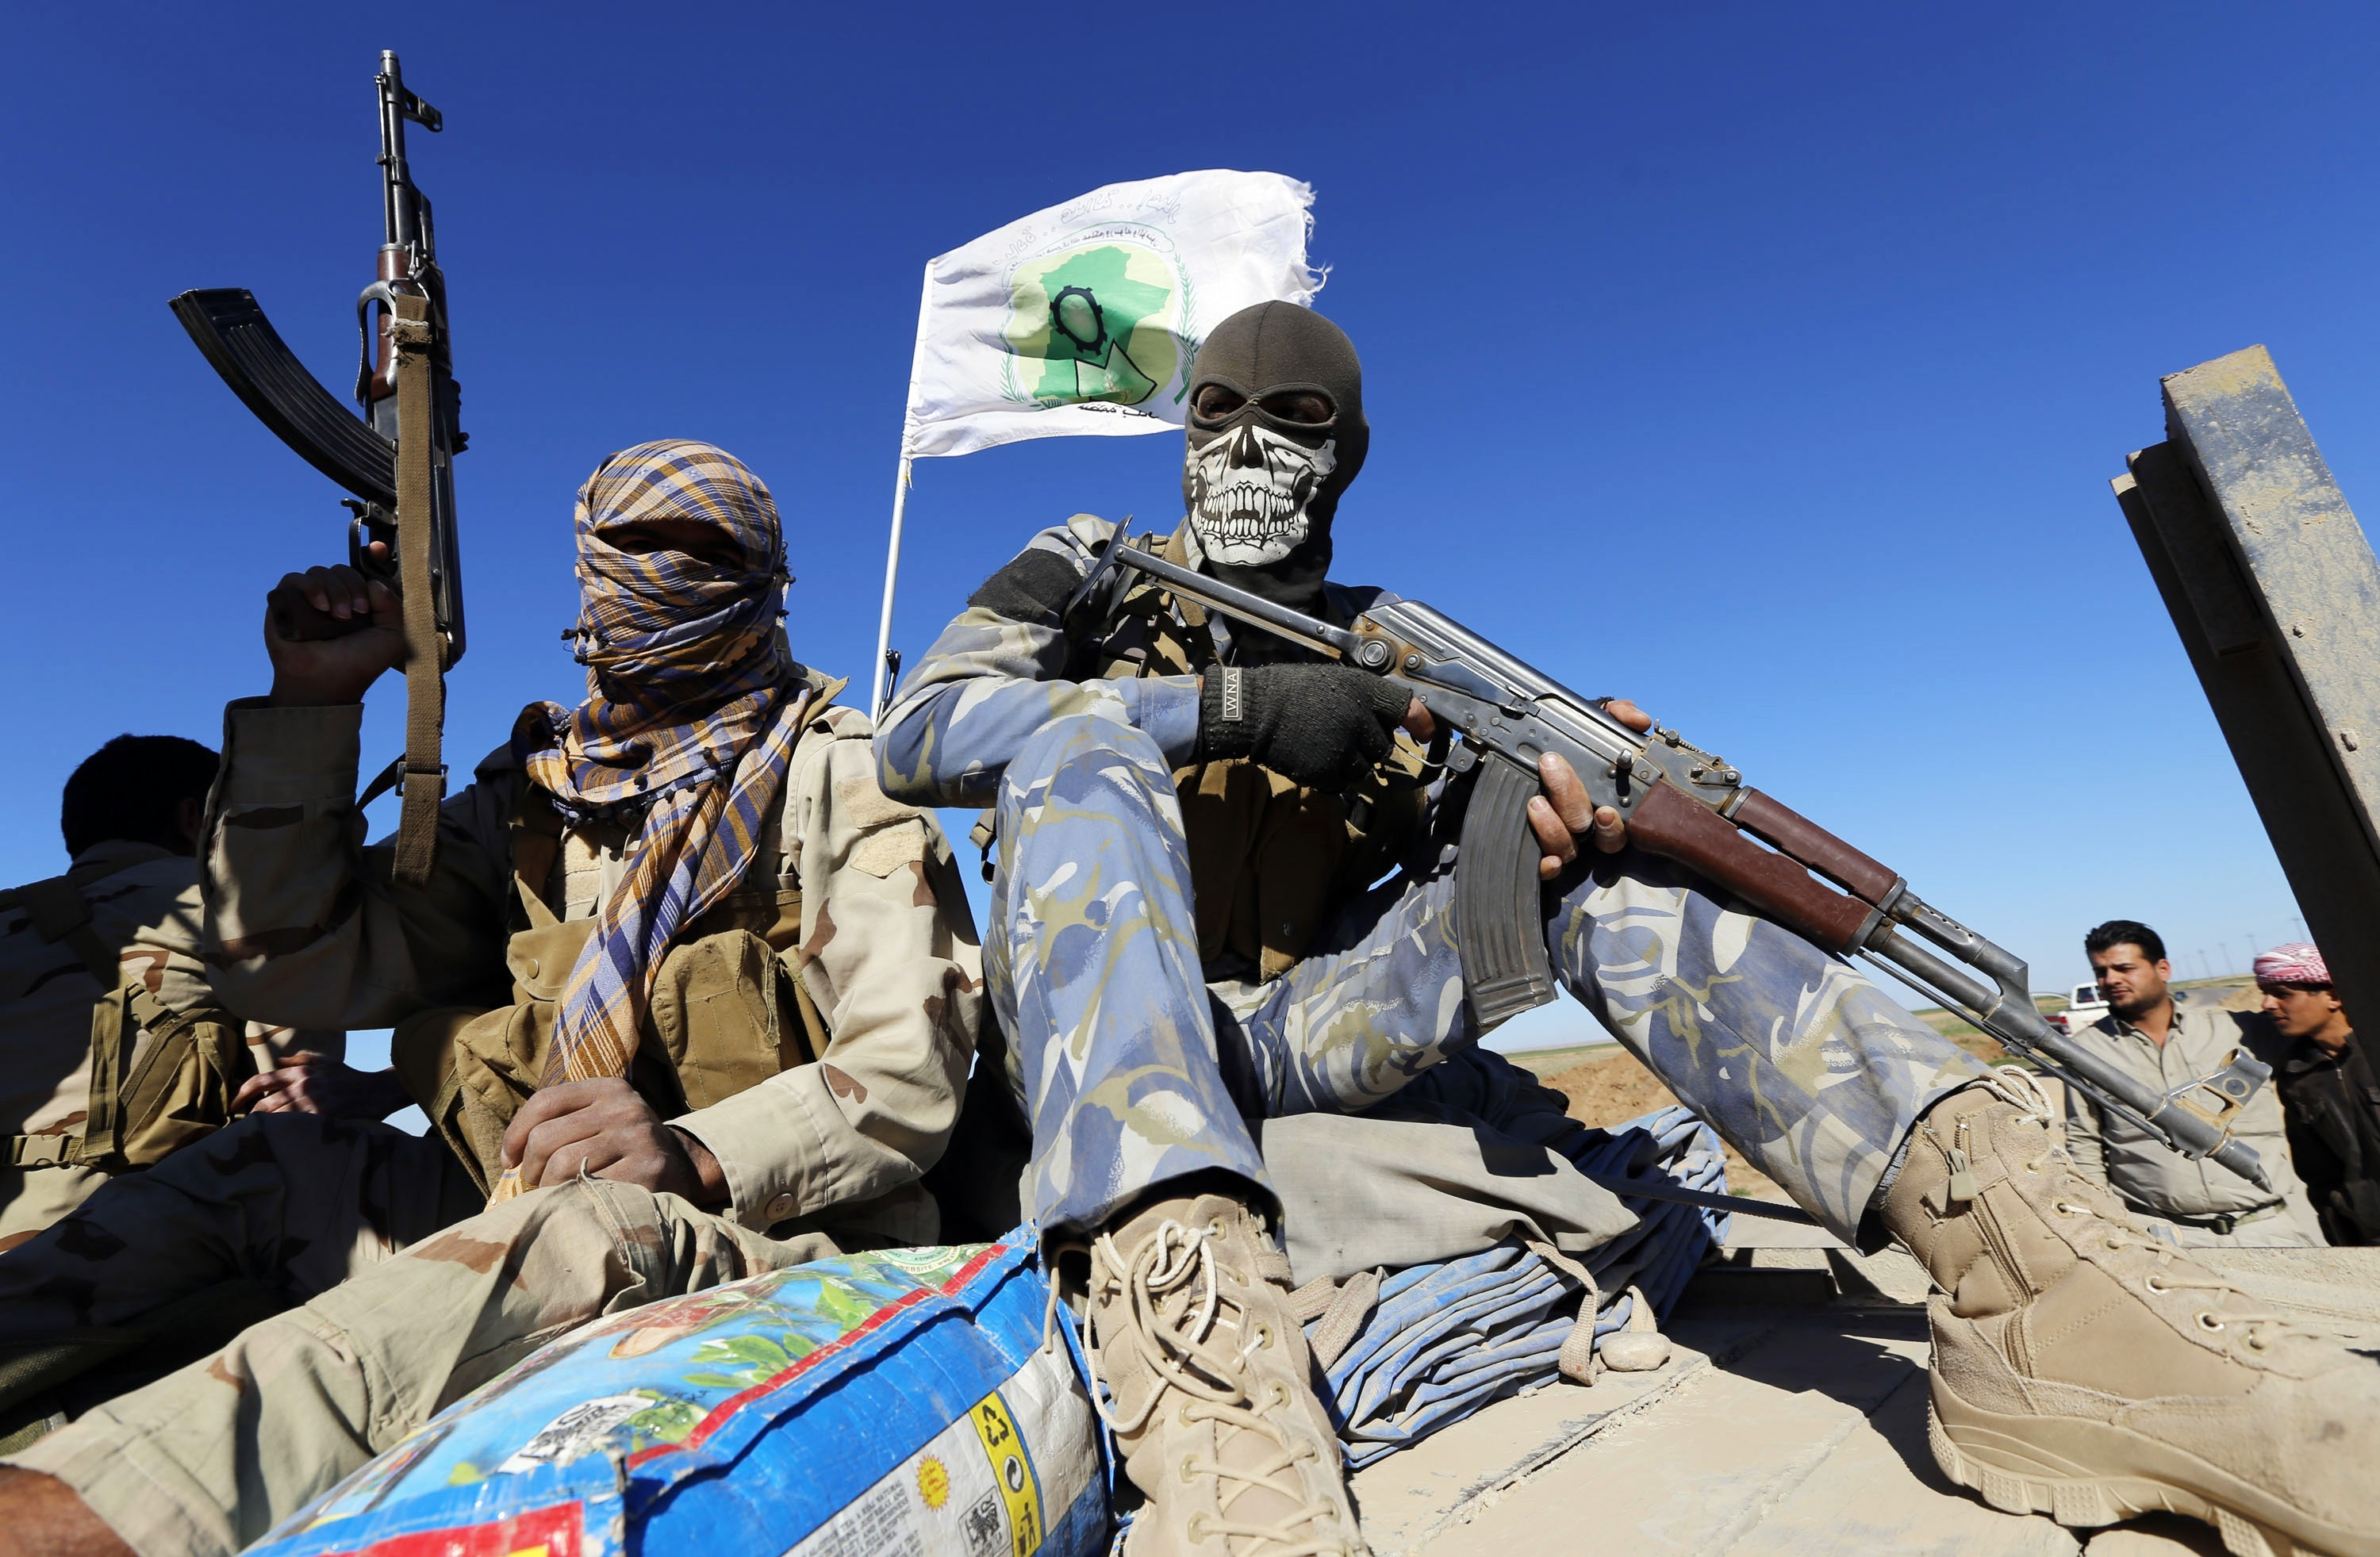 the downfall of the islamic state in iraq and syria Usa today, walbert castillo 2017, 'plan to defeat the islamic state of iraq and syria,' and guidance from the secretary of defense.